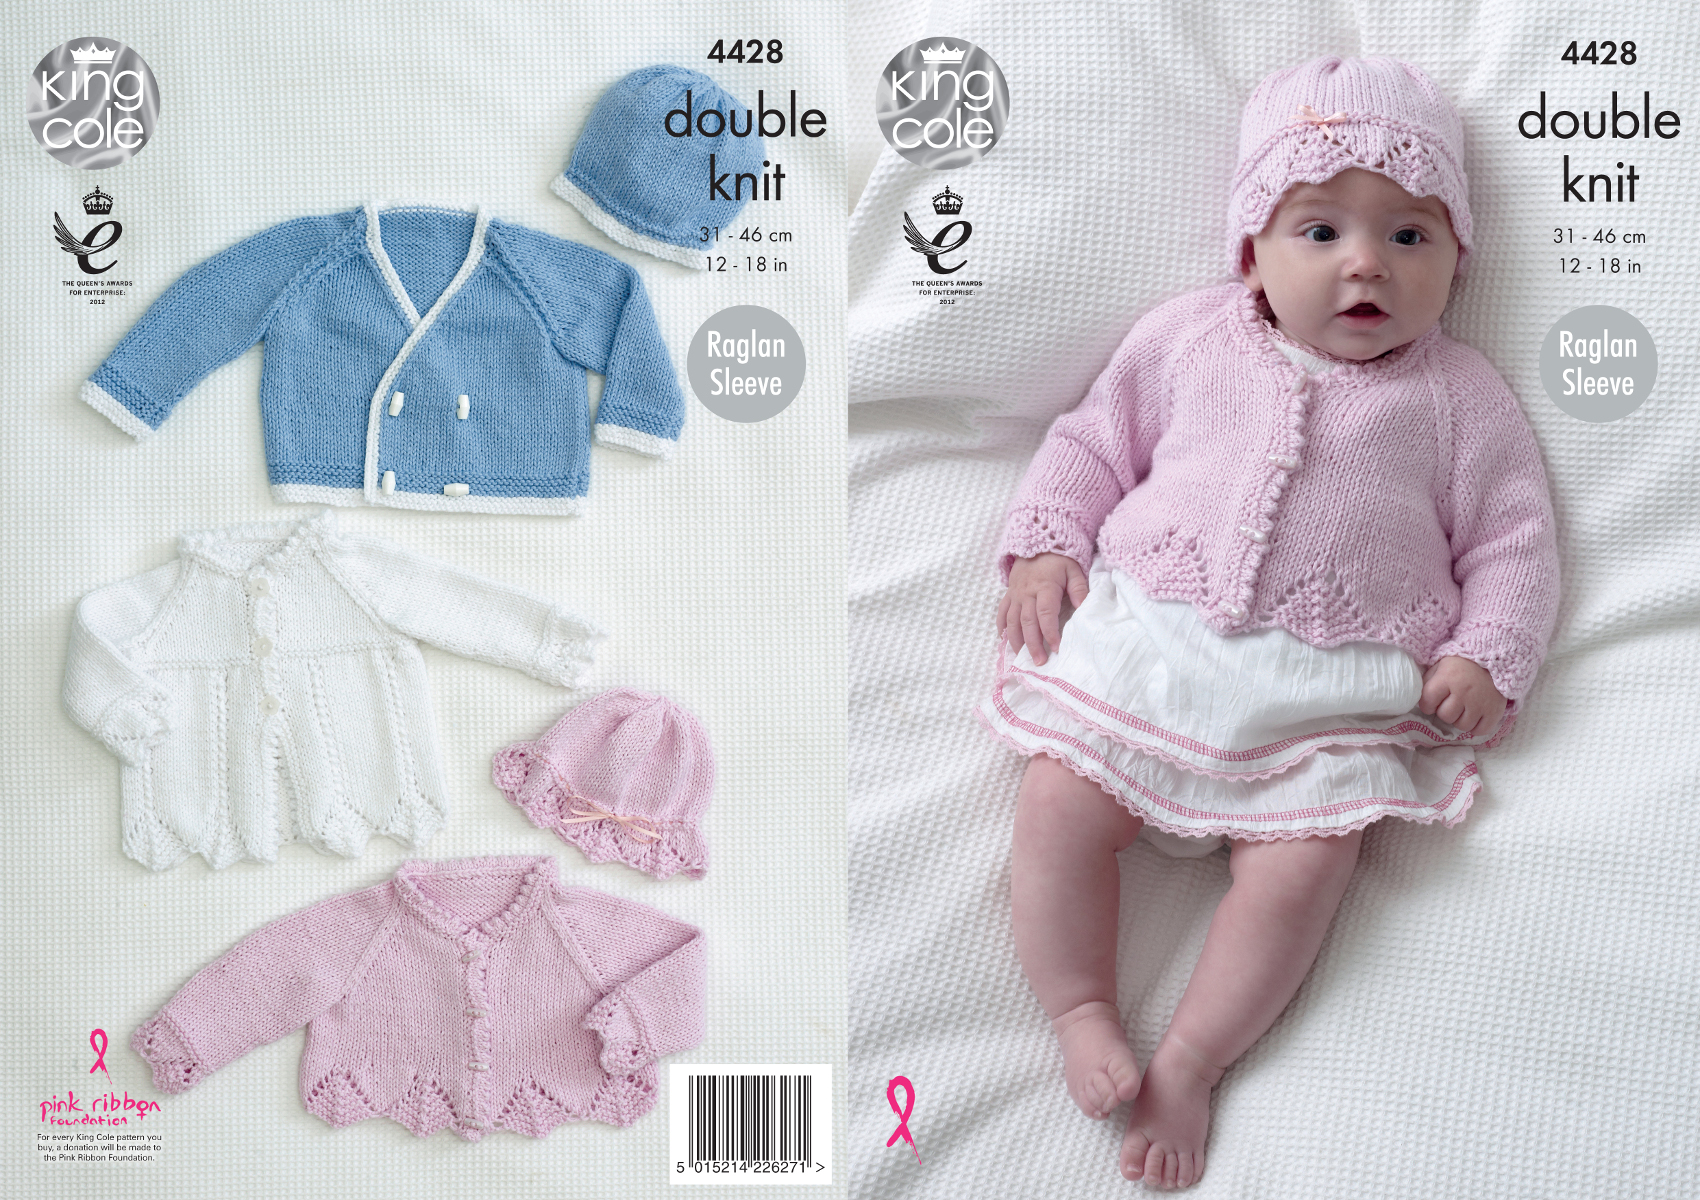 King cole baby double knitting pattern matinee coat cardigan king cole baby double knitting pattern matinee coat cardigan jacket hats dk 4428 bankloansurffo Choice Image